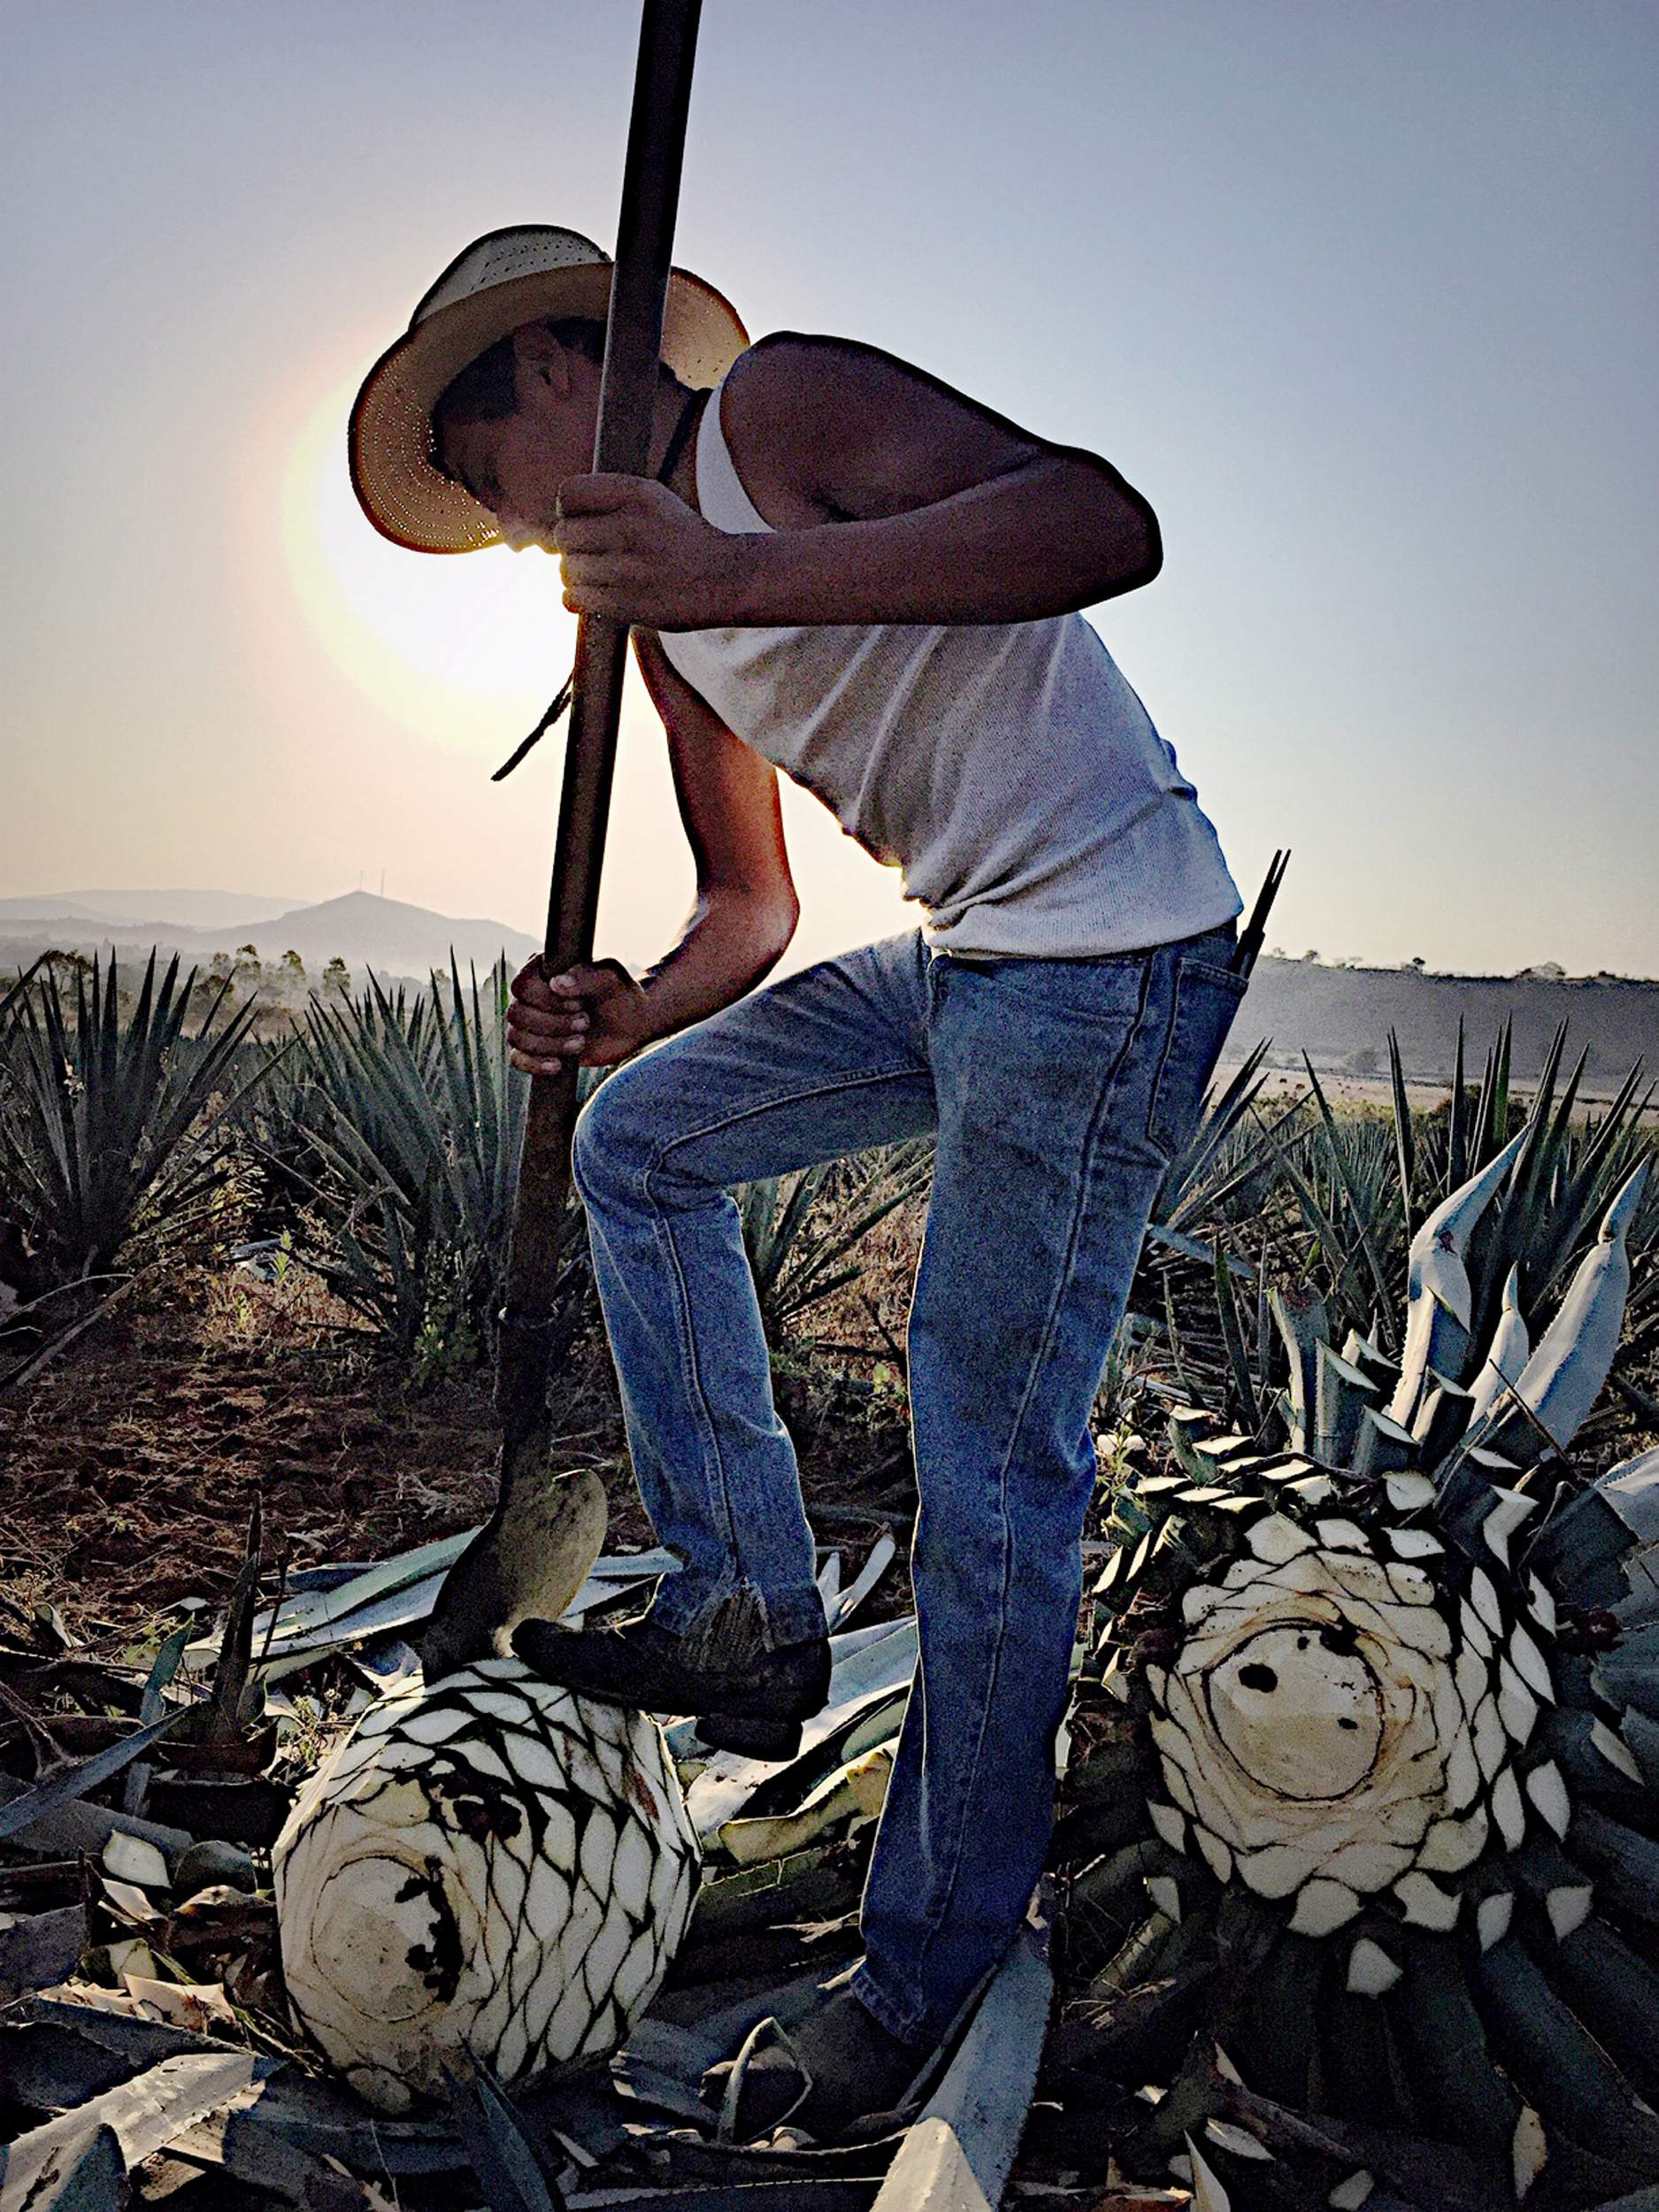 Is Your Tequila Jeopardizing Mexico? photo